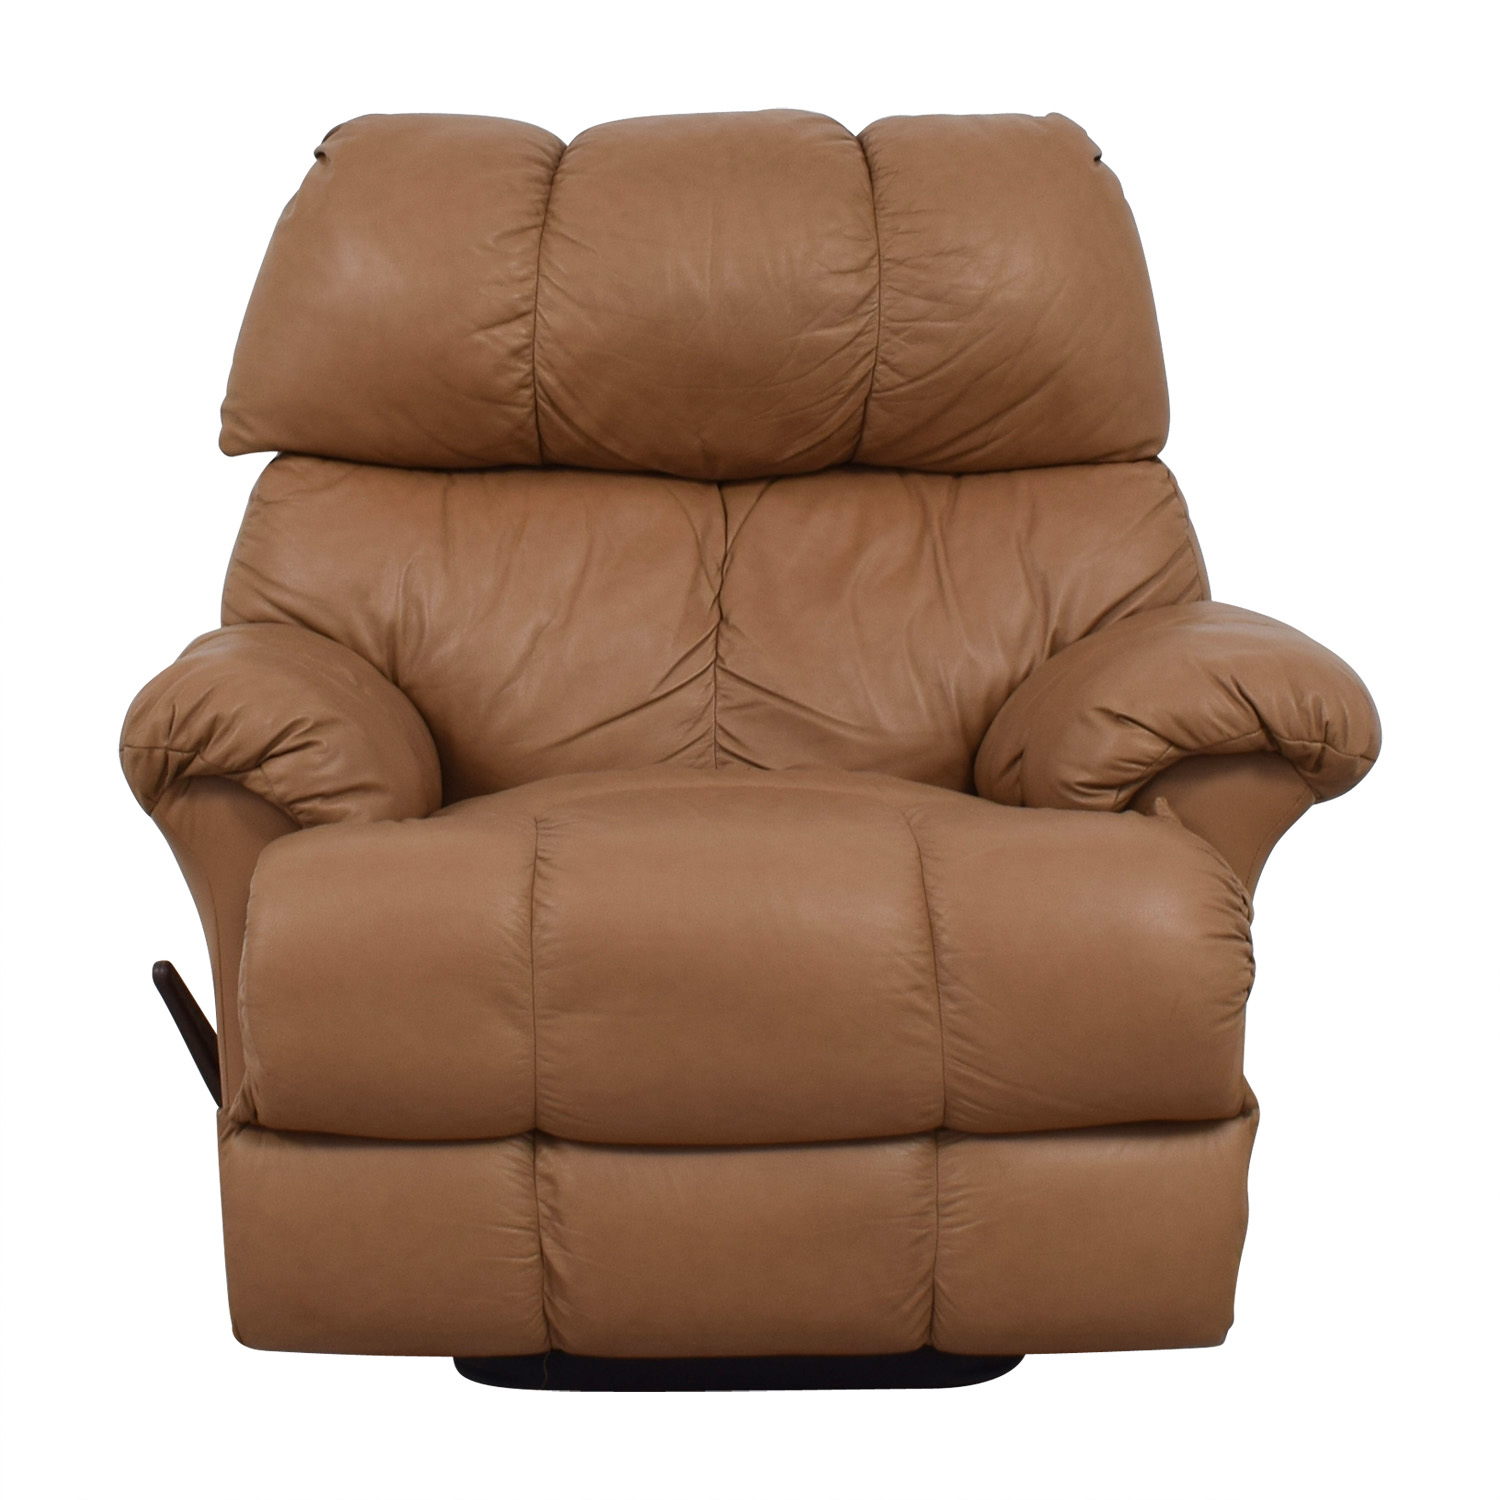 Tan Leather Reclining Chair